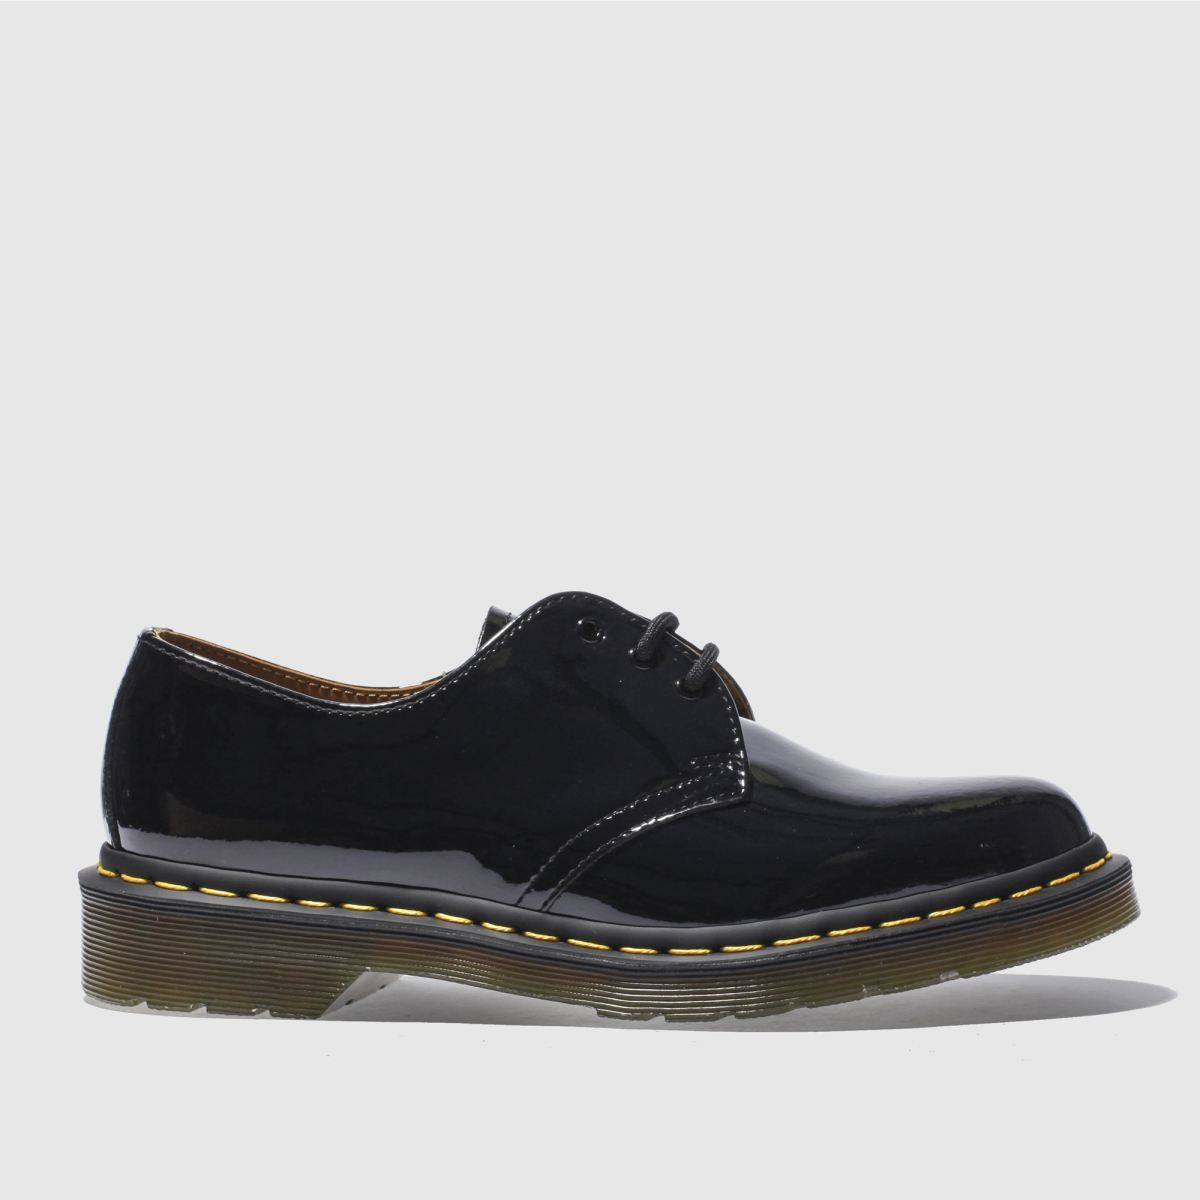 dr martens black 1461 flat shoes